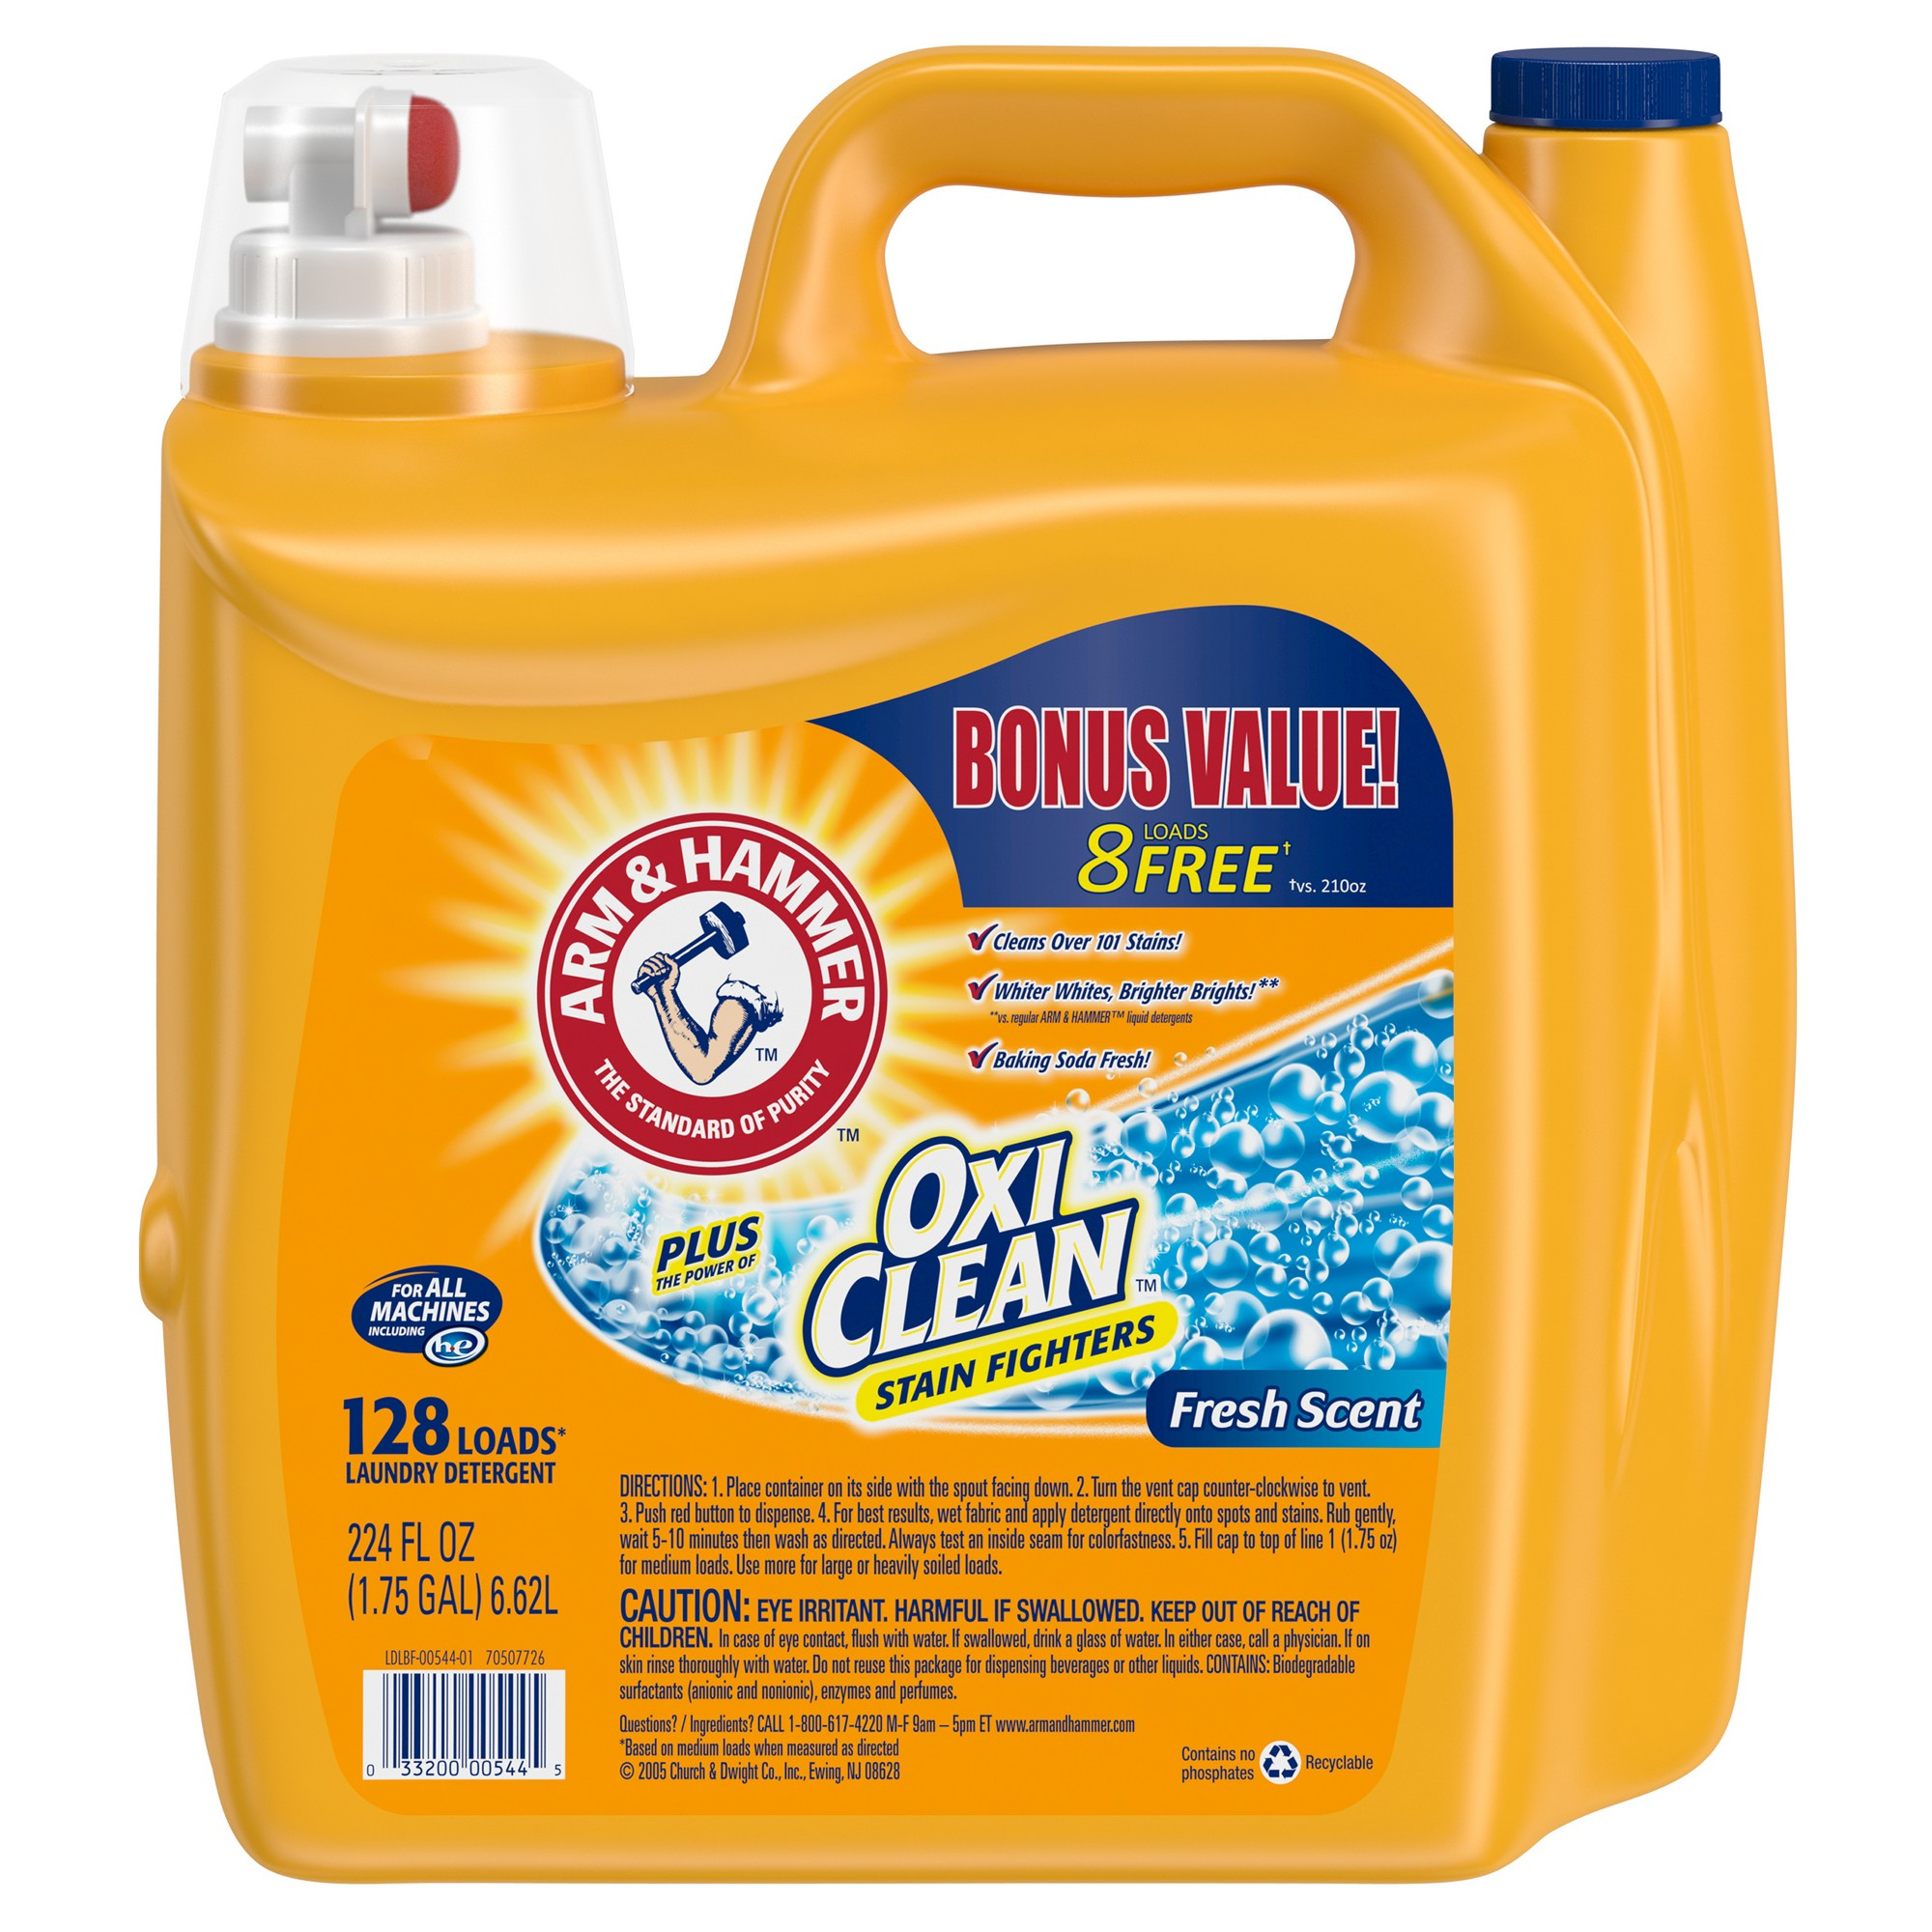 Arm Hammer Oxiclean Fresh Scent Liquid Laundry Detergent 224oz